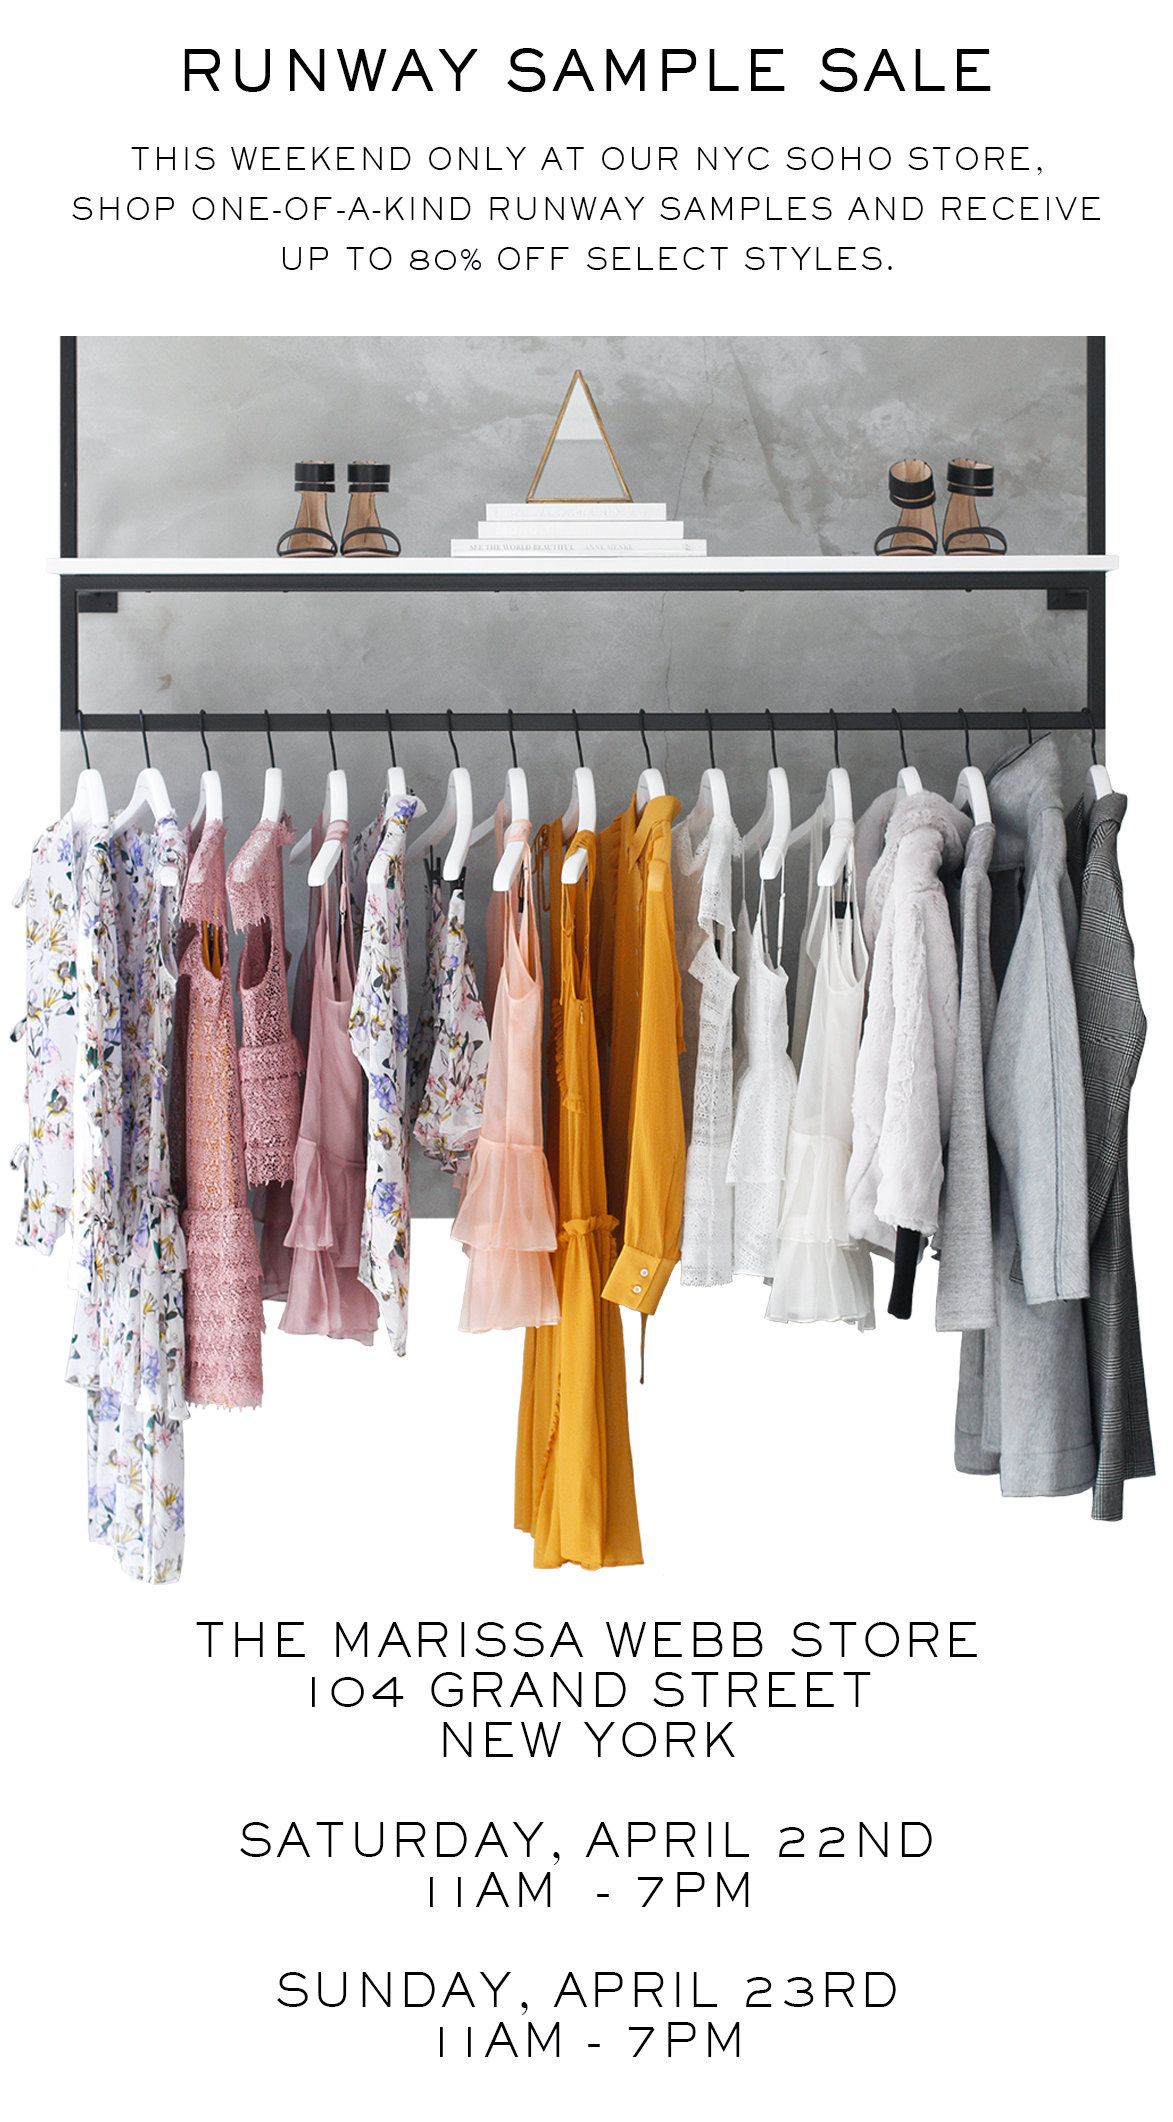 Marissa Webb - In case you didn't hear... Up to 80% off + Runway ...